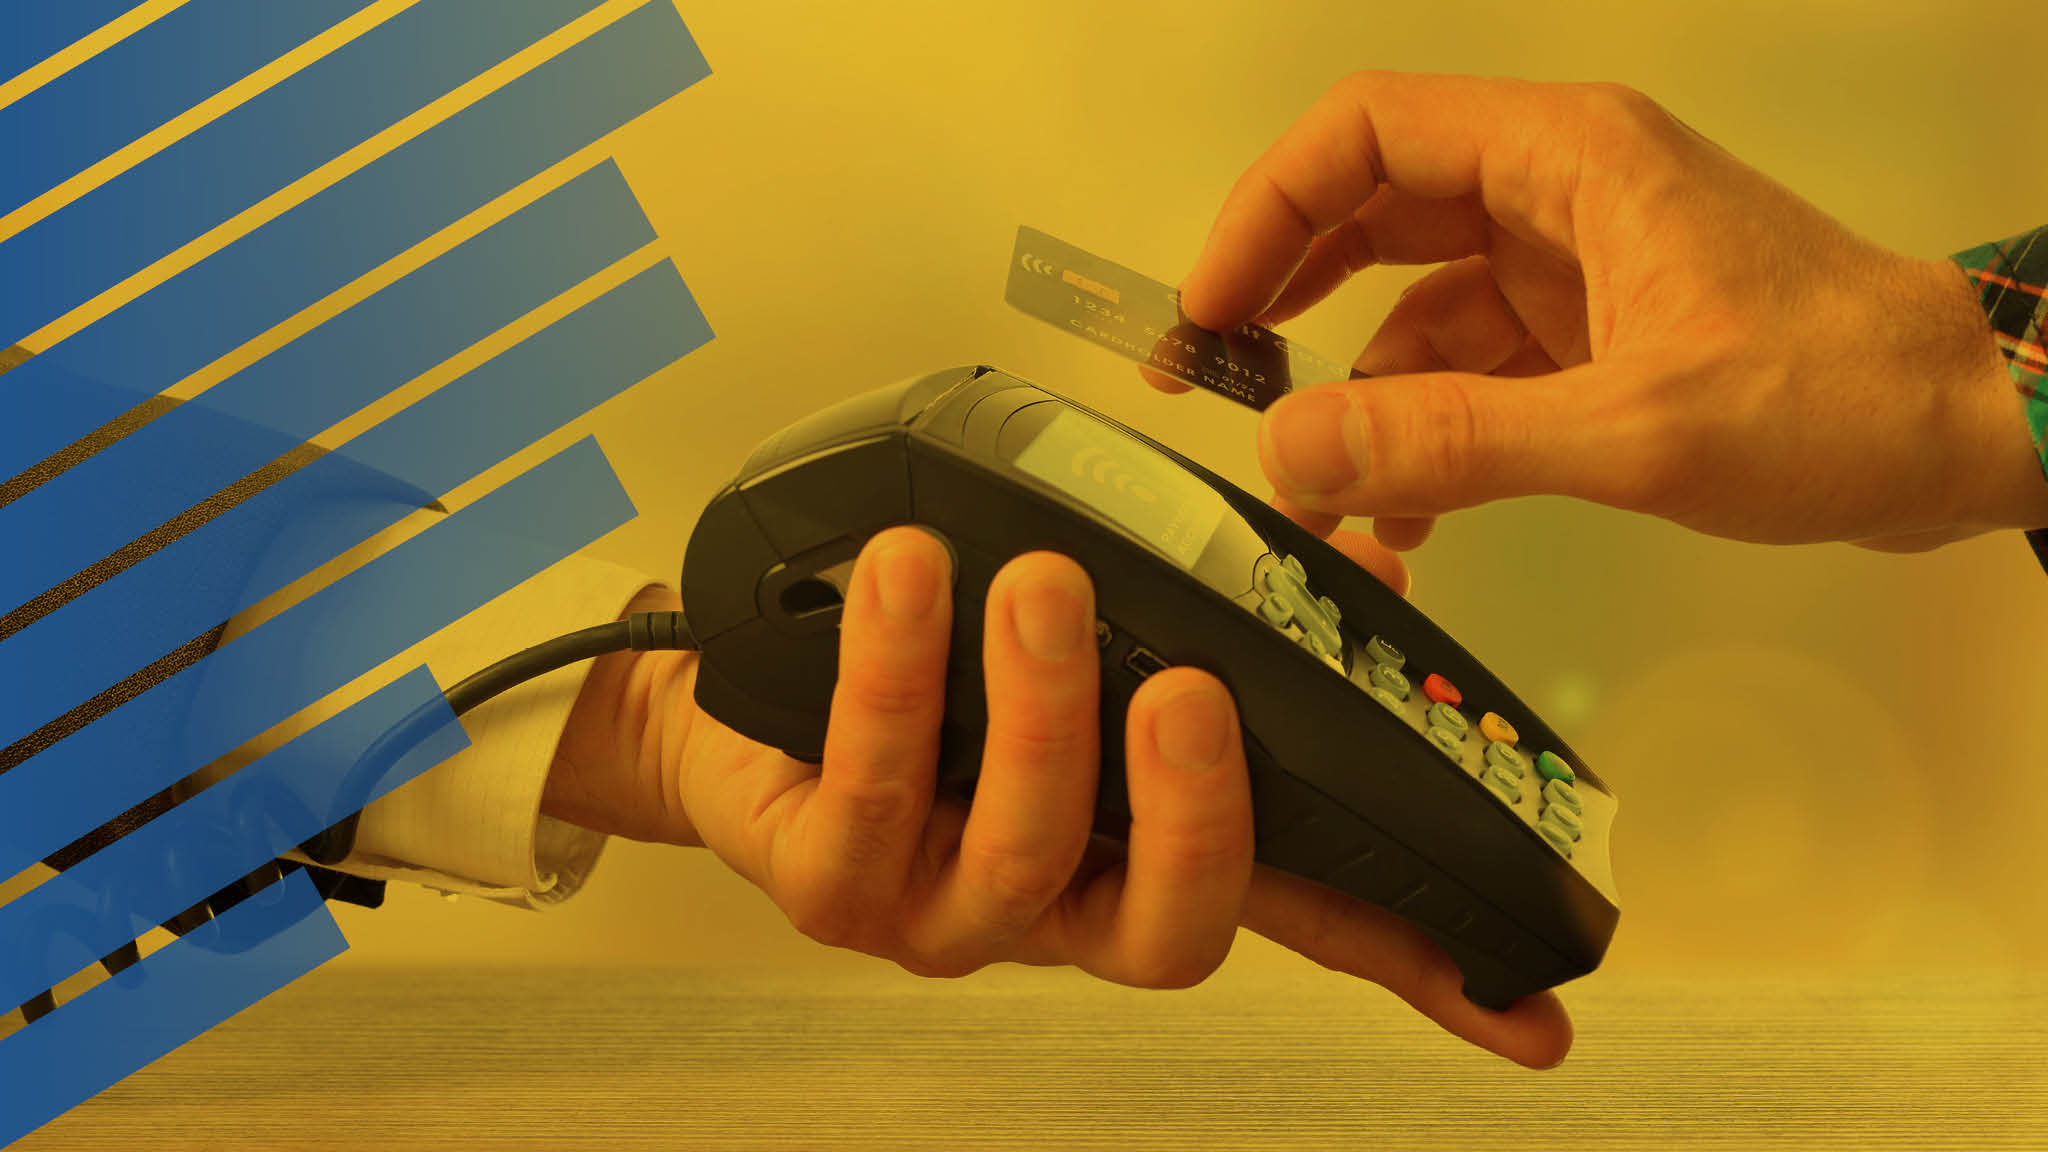 At last, US banks are introducing contactless cards